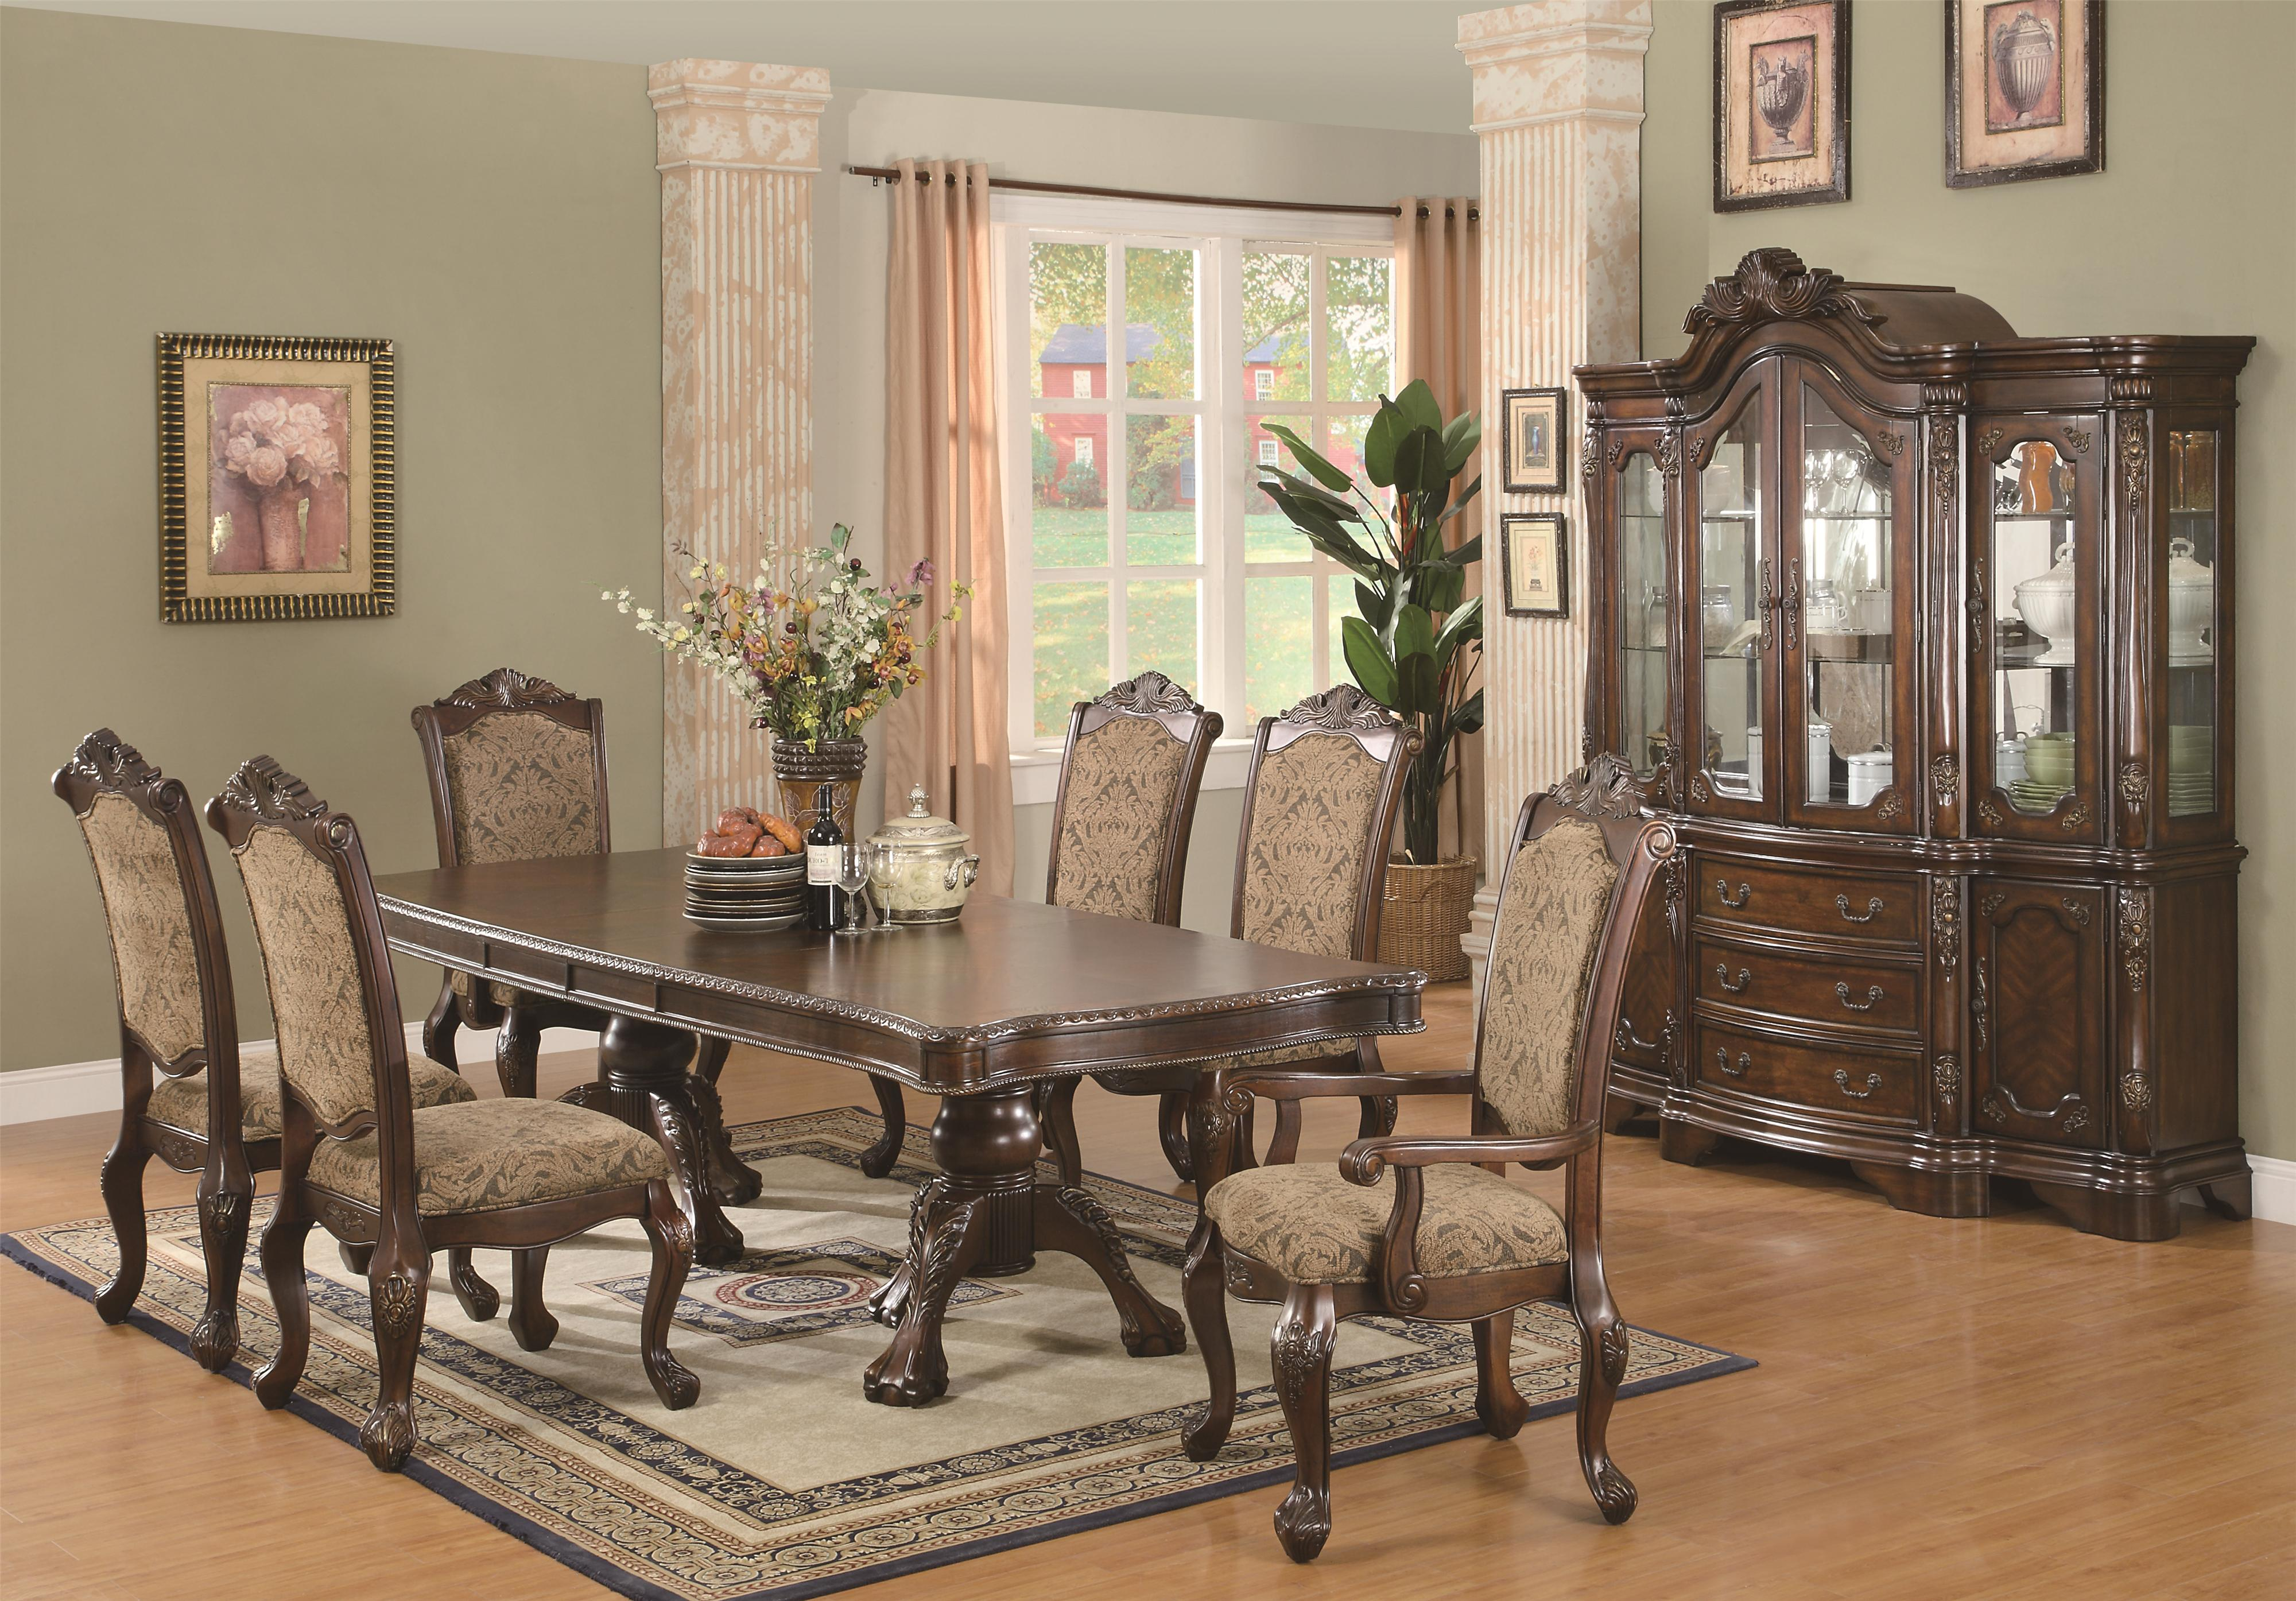 Coaster Andrea 7 Piece Double Pedestal Dining Table and Cushion Back     Coaster Andrea 7 Piece Double Pedestal Dining Table and Cushion Back Chair  Set   Coaster Fine Furniture